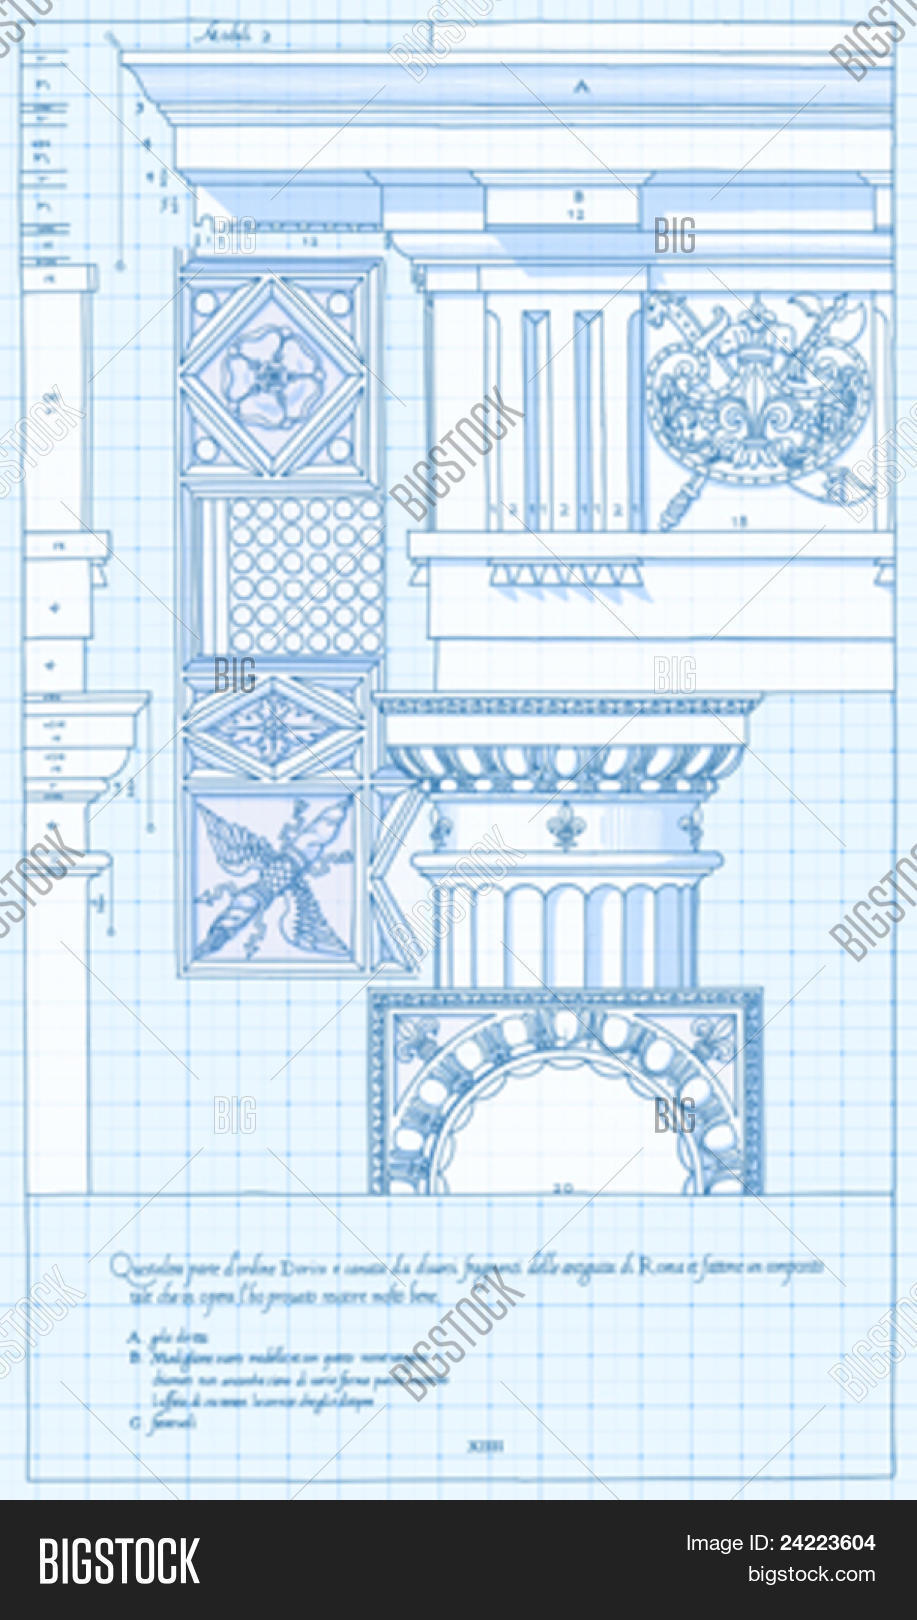 Blueprint hand draw vector photo free trial bigstock blueprint hand draw sketch doric architectural order based the five orders of architecture malvernweather Image collections